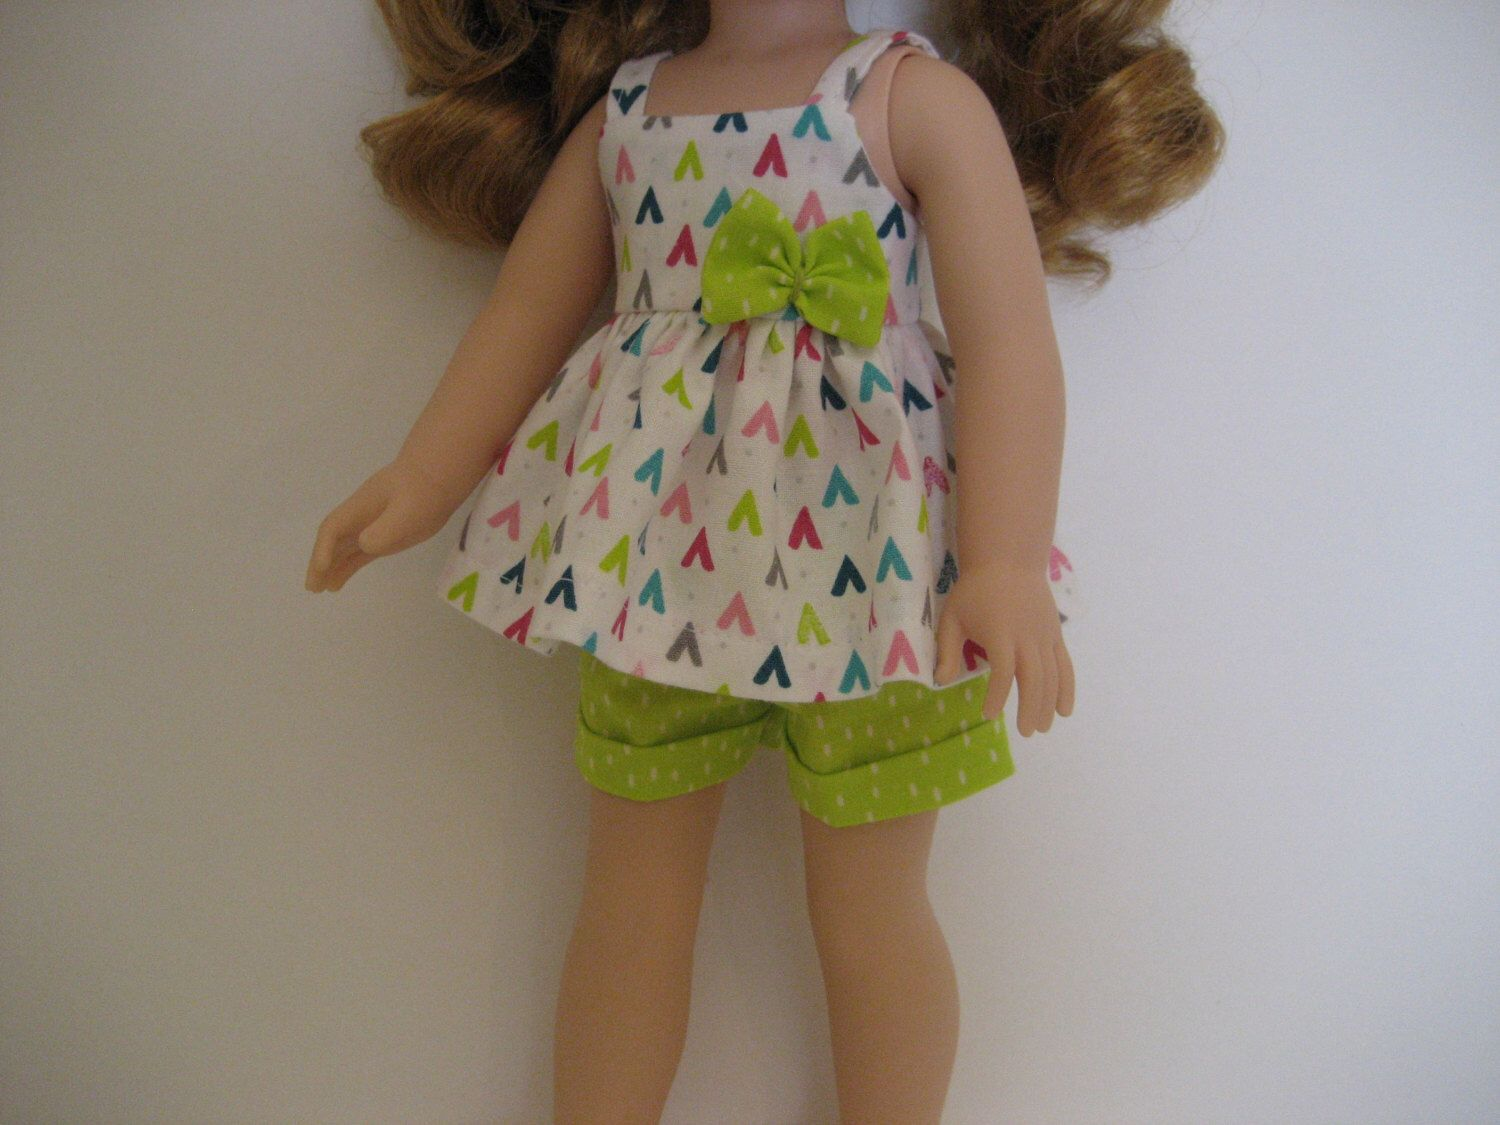 14.5 Inch Doll Clothes - Tiny Teepees Shorts Outfit made to fit dolls such as Wellie Wishers doll clothes by TinyClothesline on Etsy https://www.etsy.com/listing/475038716/145-inch-doll-clothes-tiny-teepees